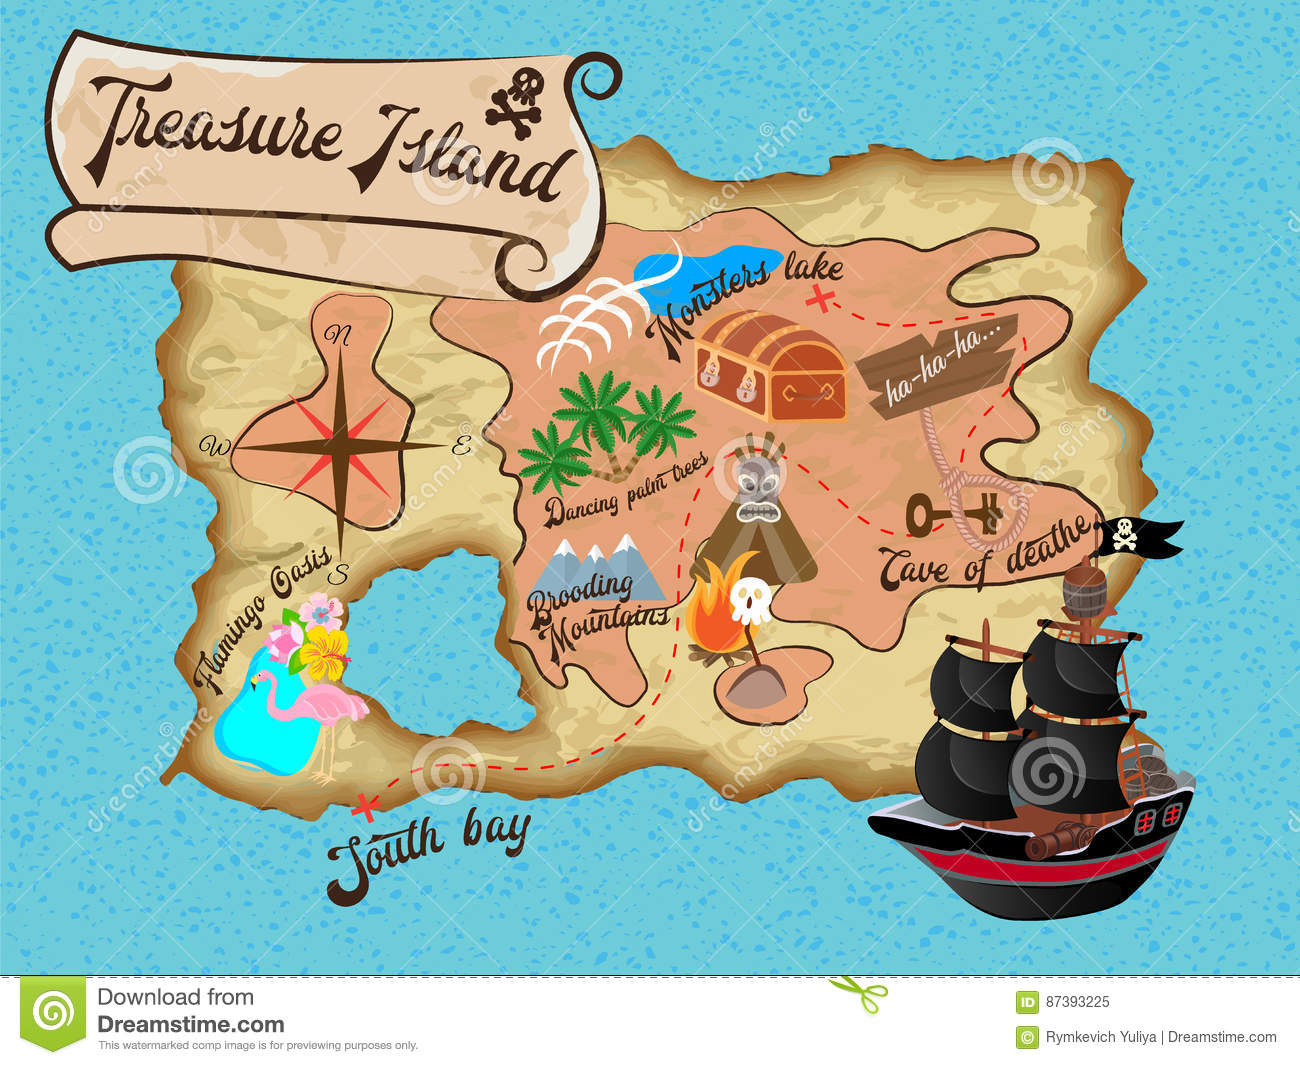 Treasure Island Pirate Map For Quest Stock Vector - Illustration of on